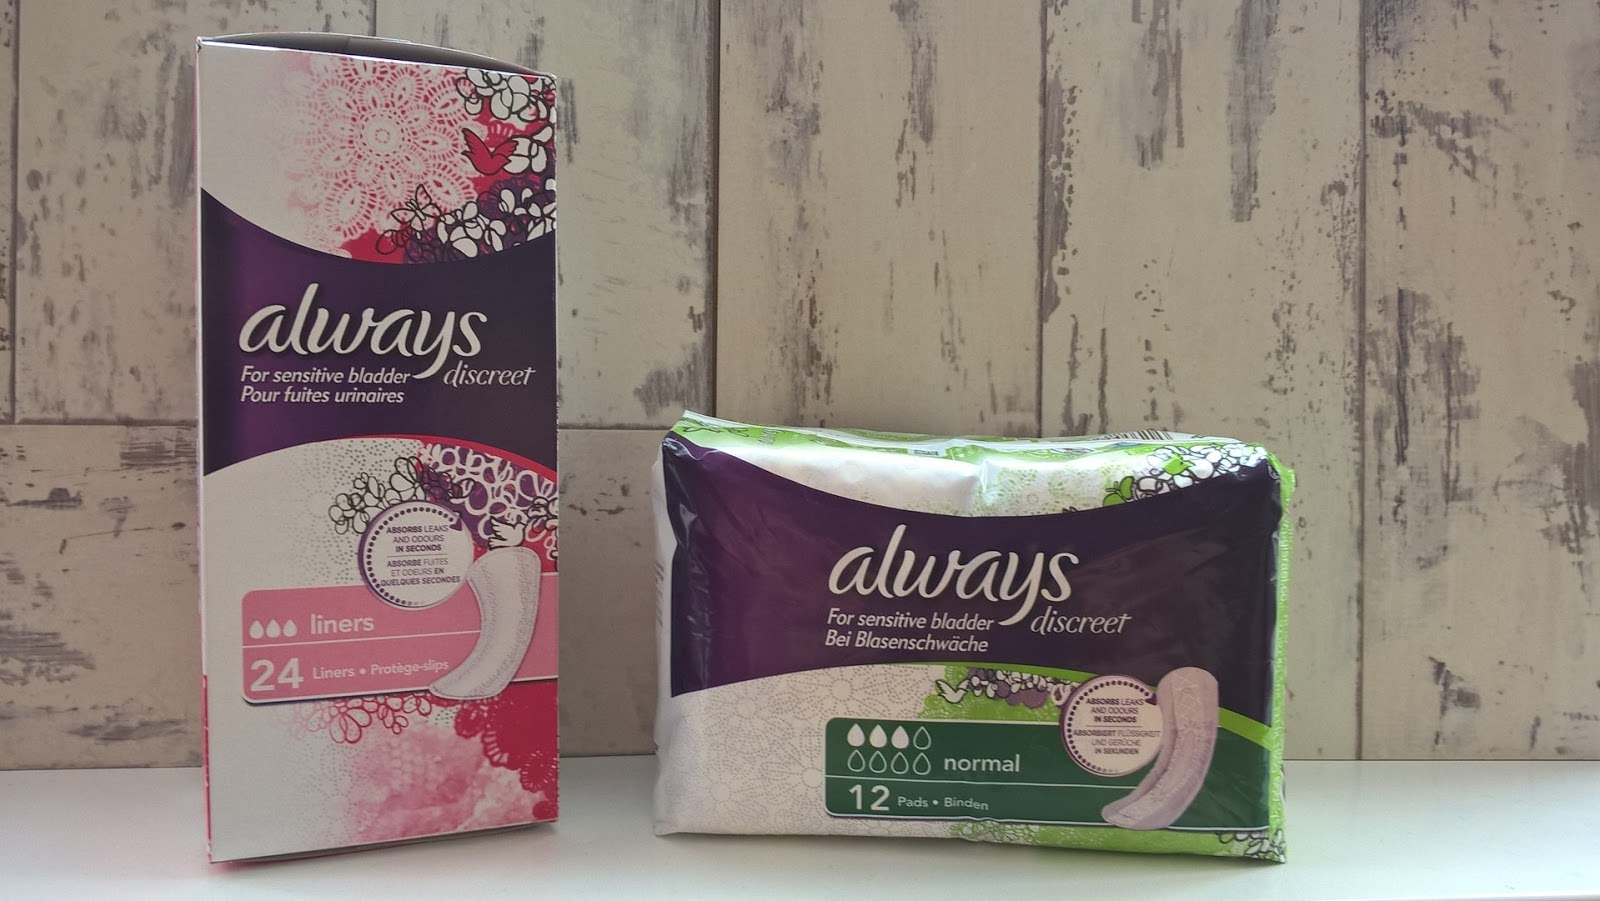 Products from the Always Sensitive Bladder range